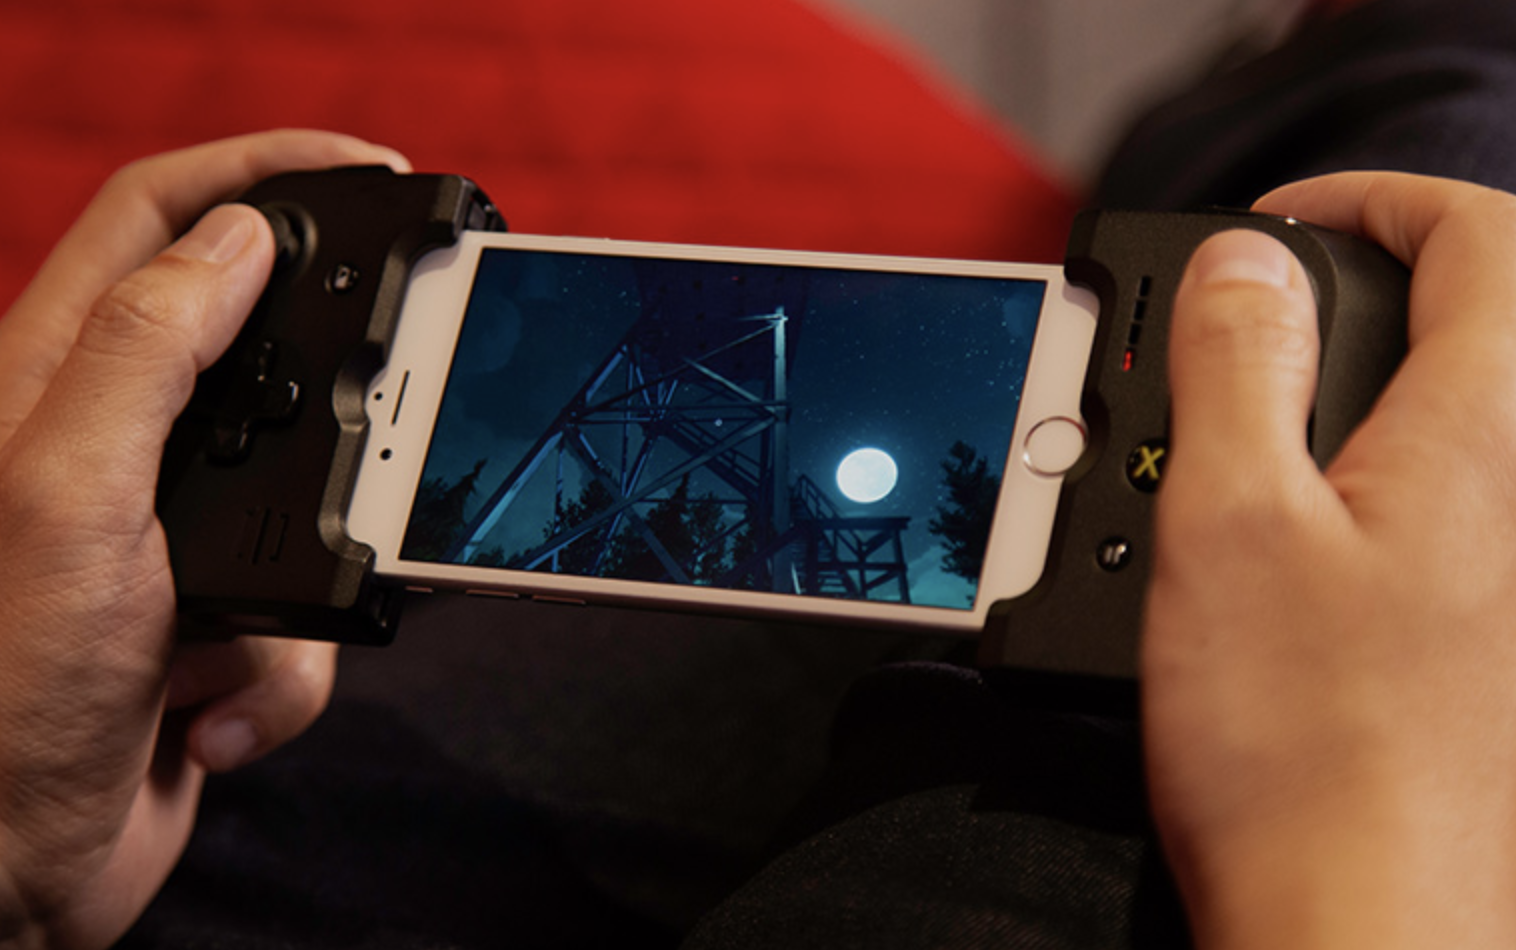 Steam Link now lets you beam Steam games to your iOS